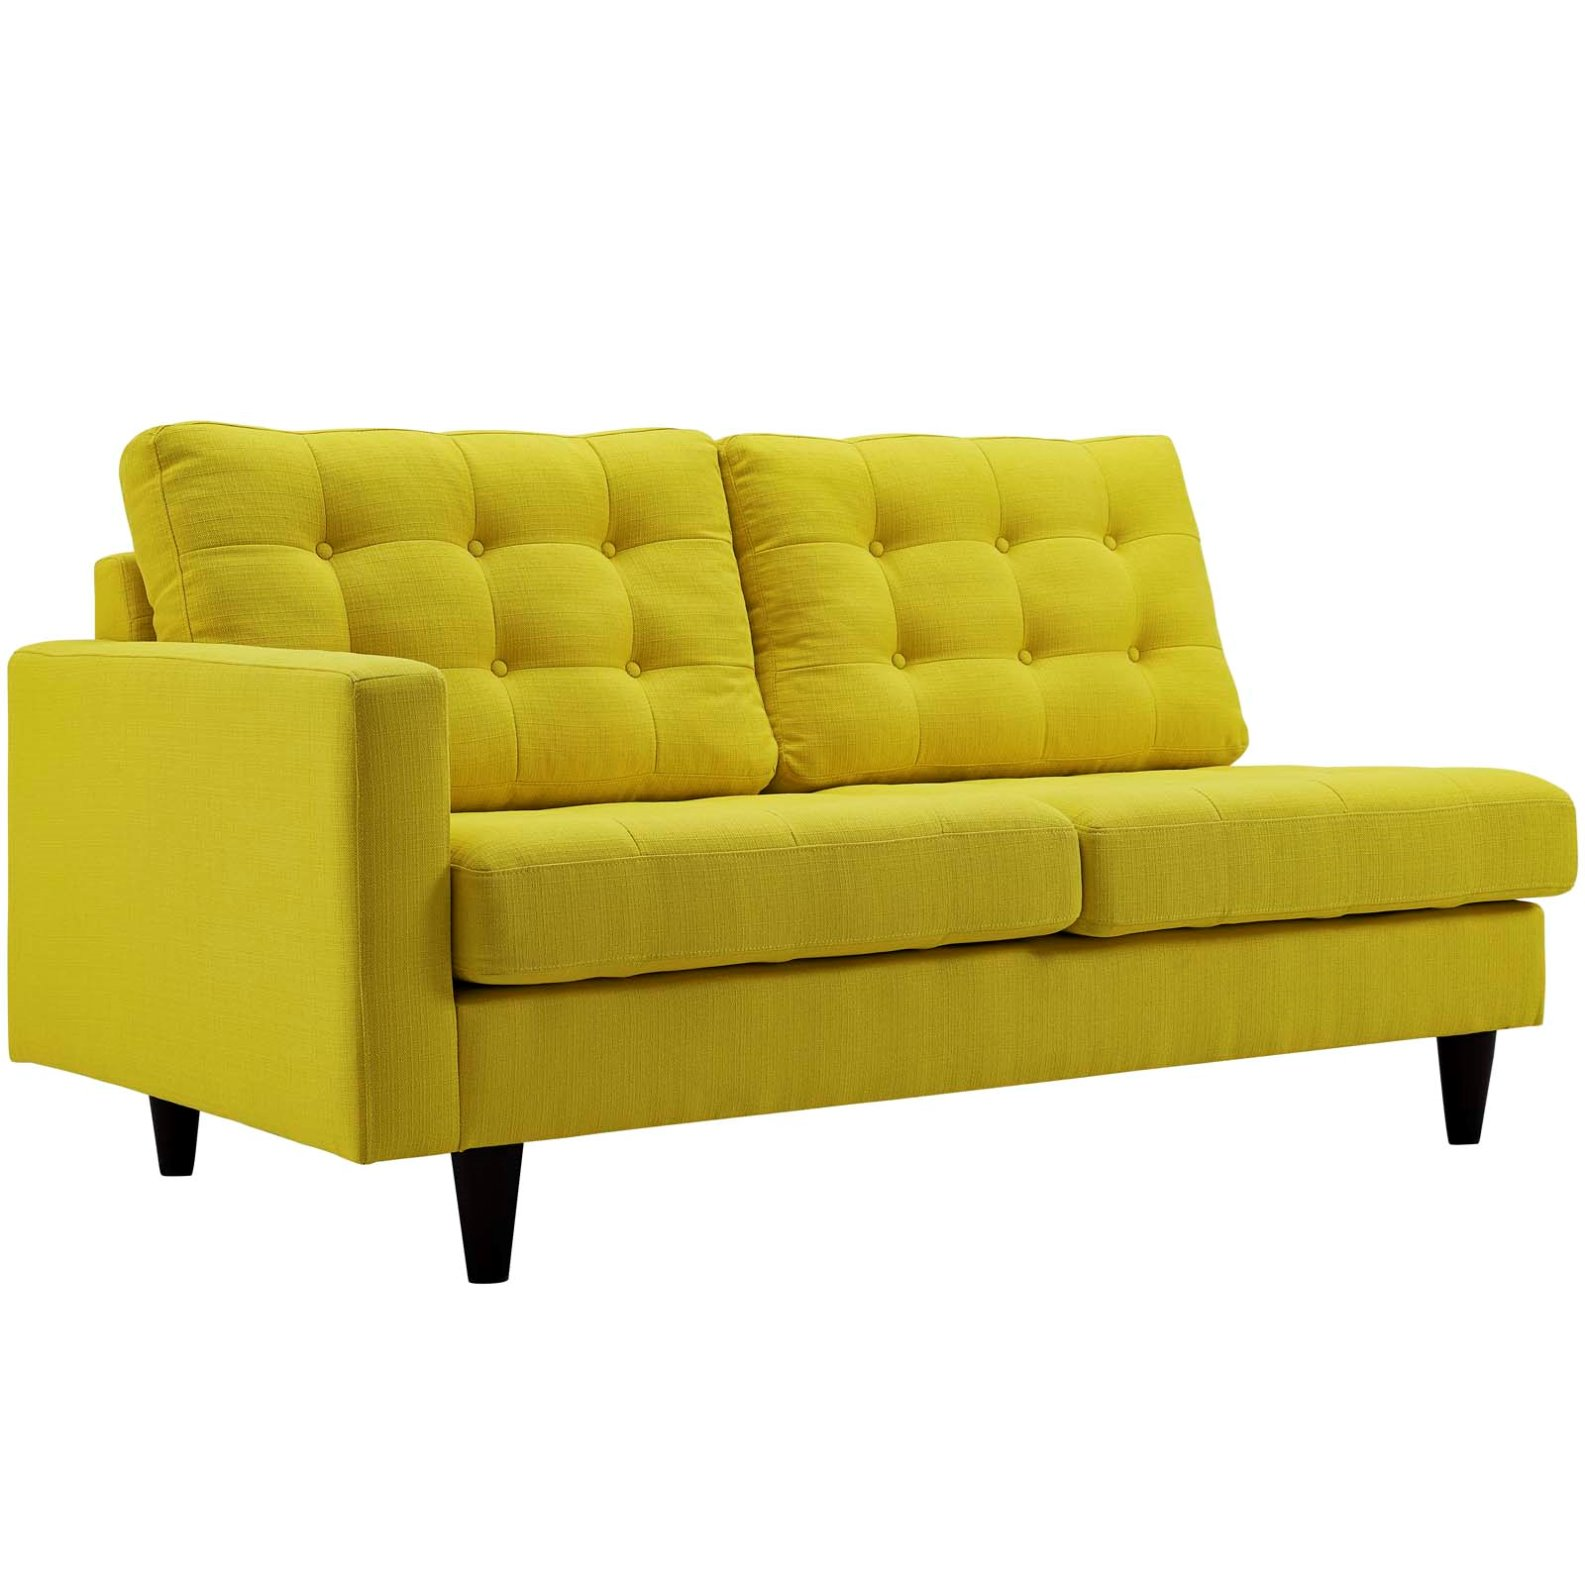 Modern Contemporary Urban Design Living Lounge Room Left-Facing Loveseat Sofa, Yellow, Fabric